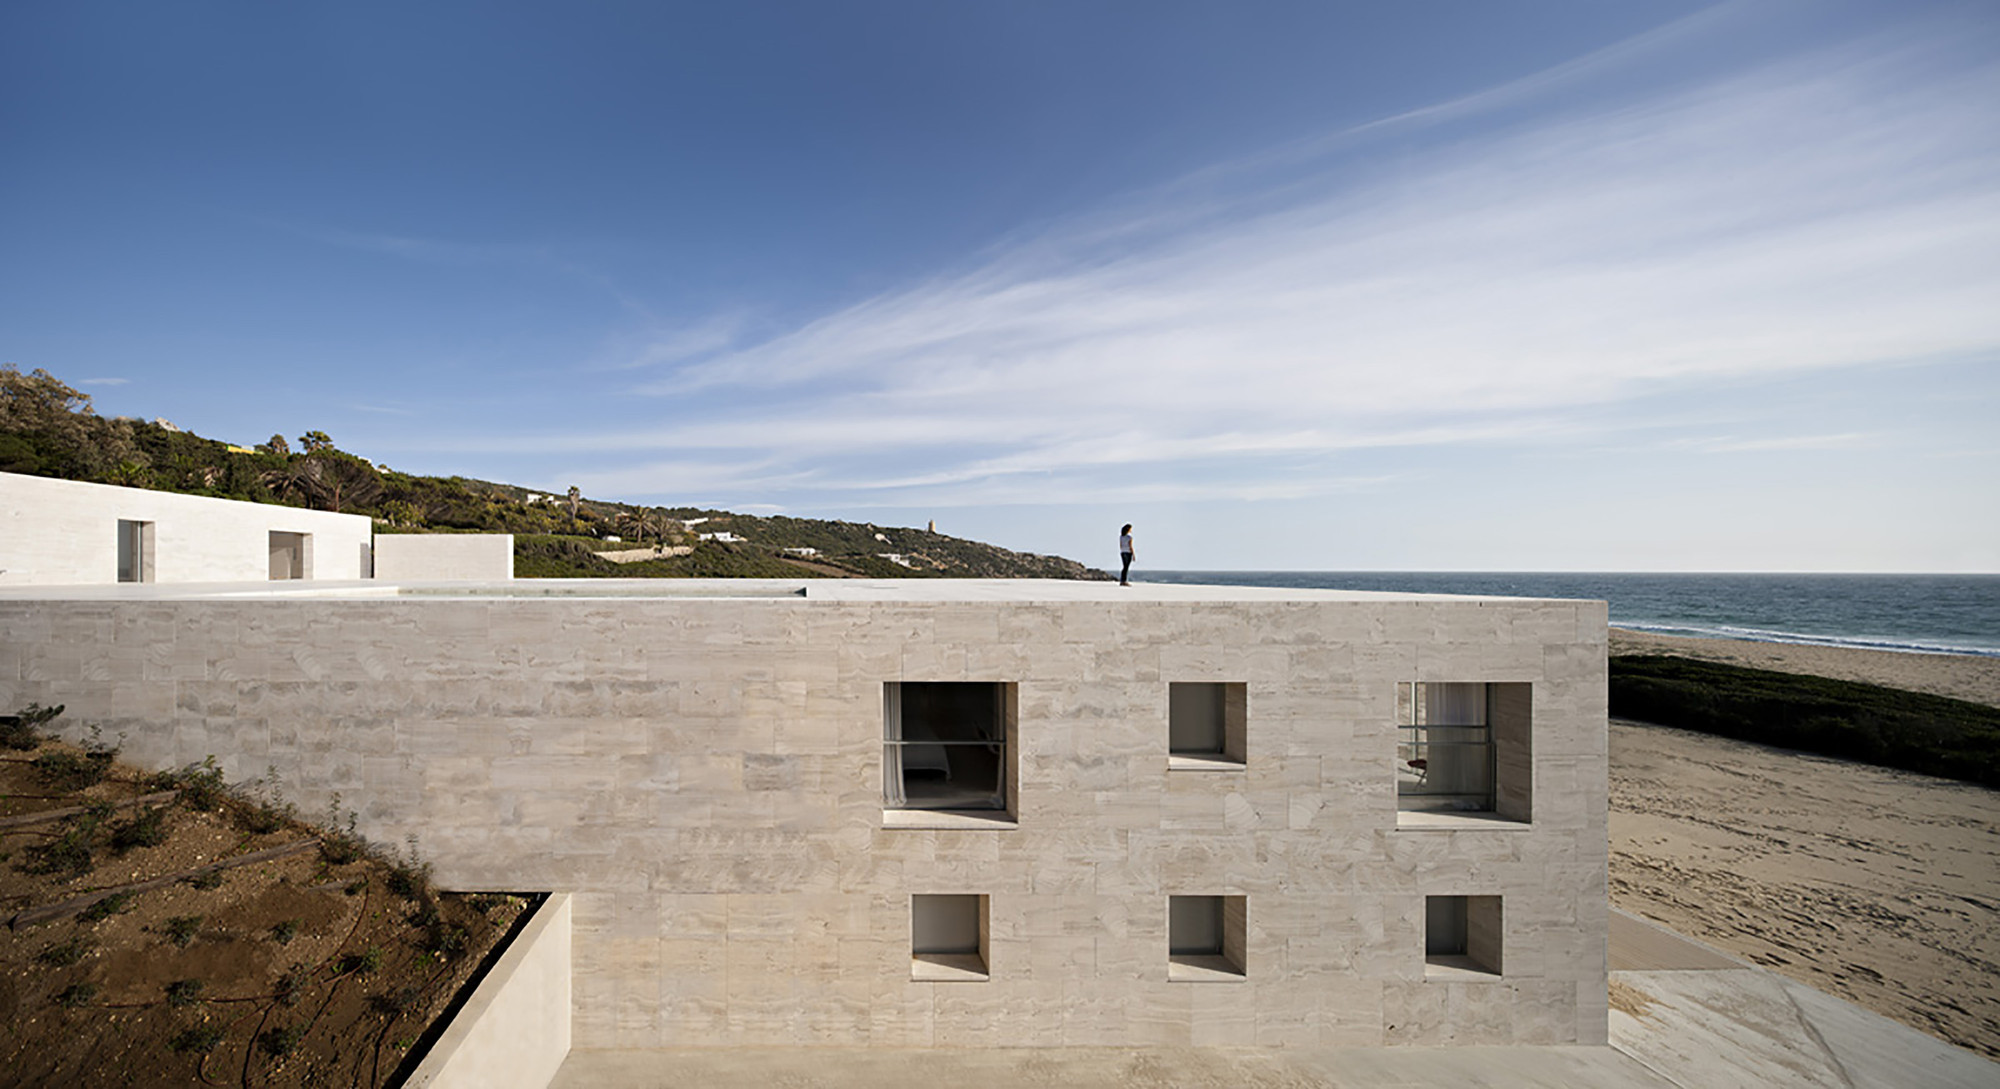 The house of the infinite alberto campo baeza archdaily - Campo baeza obras ...